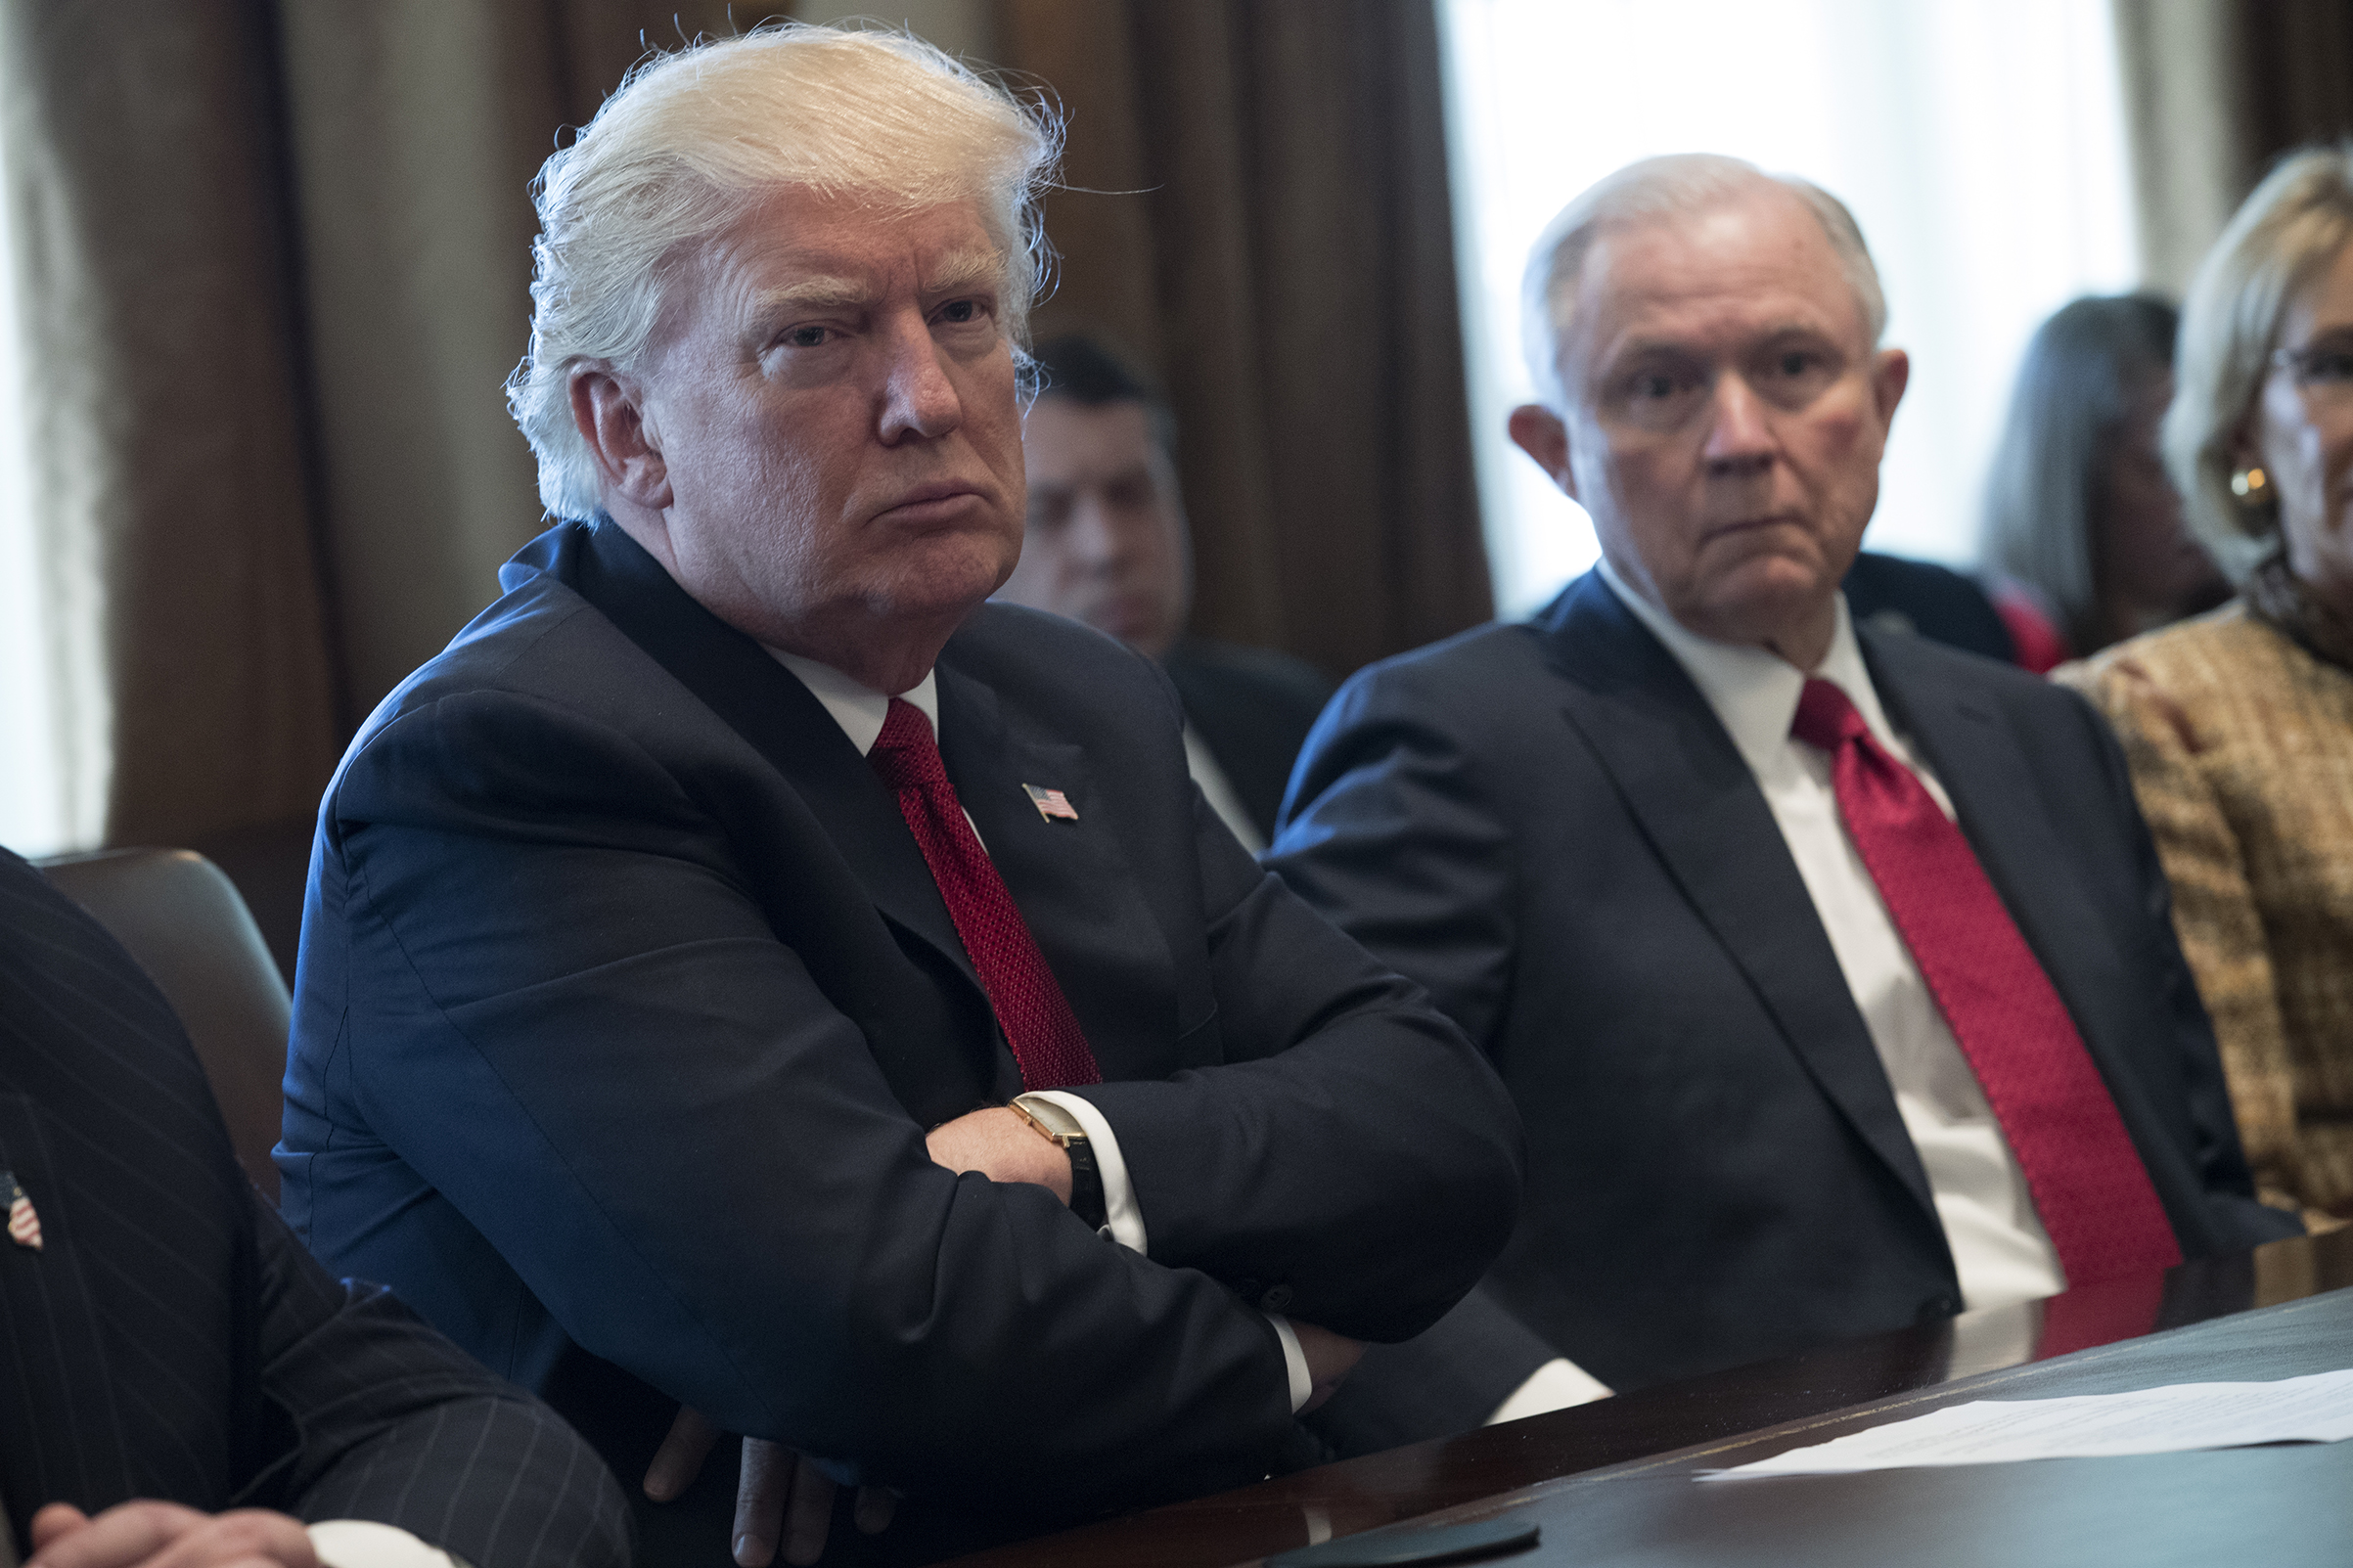 U.S. President Donald Trump (L) and Attorney General Jeff Sessions (R) attend a panel discussion on an opioid and drug abuse in the Roosevelt Room of the White House March 29, 2017 in Washington, DC.